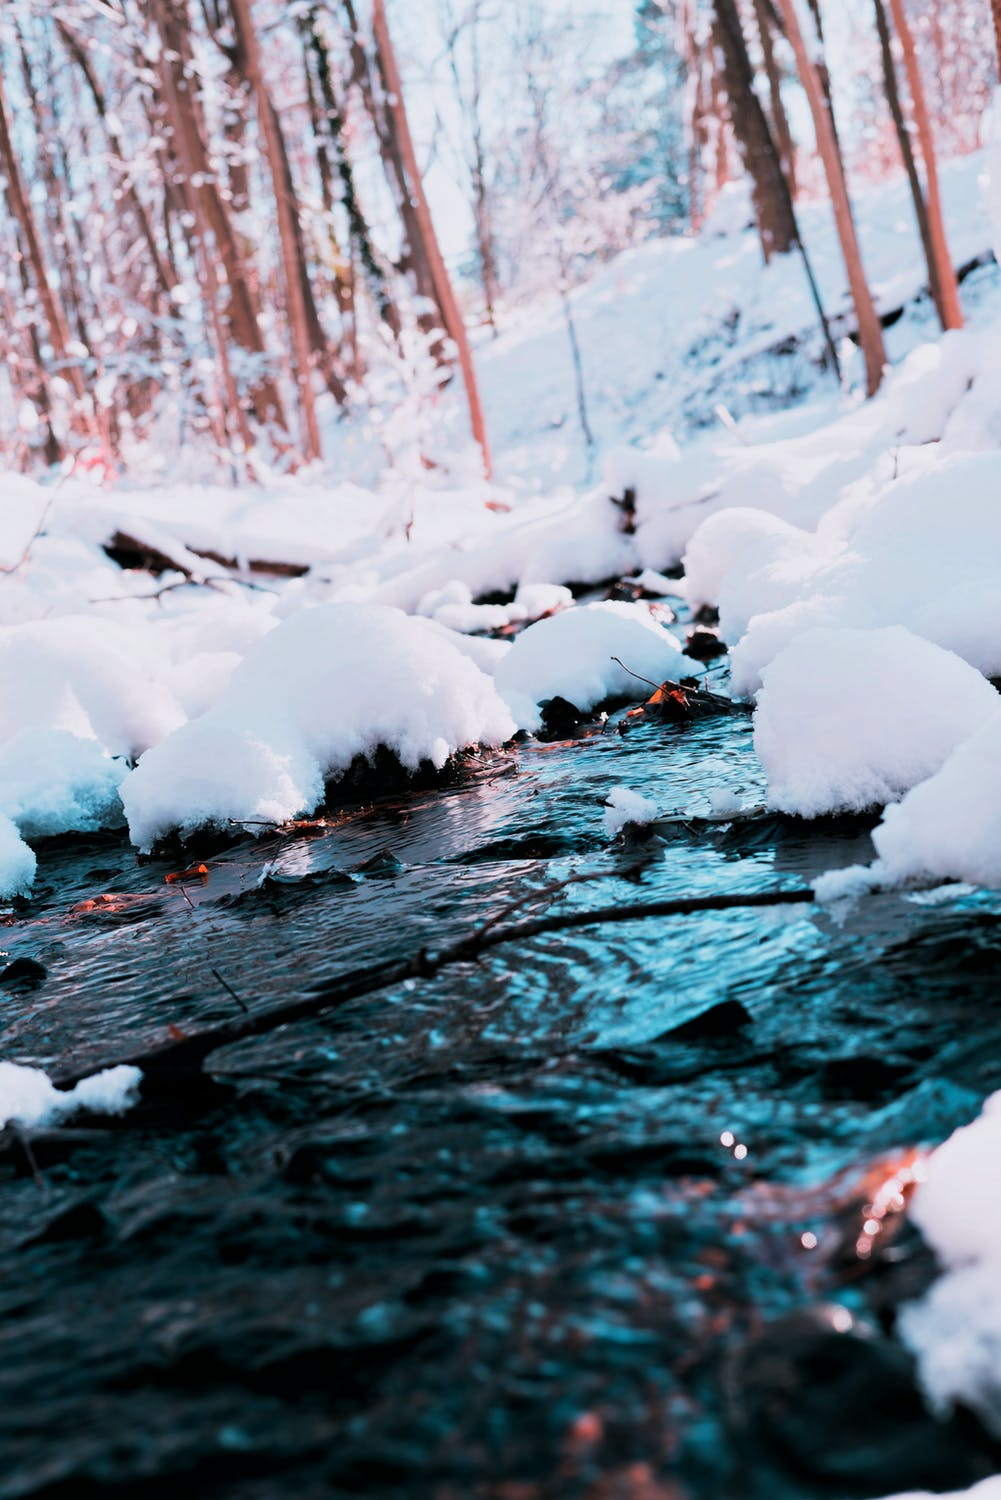 Winter iphone wallpaper with snow and water